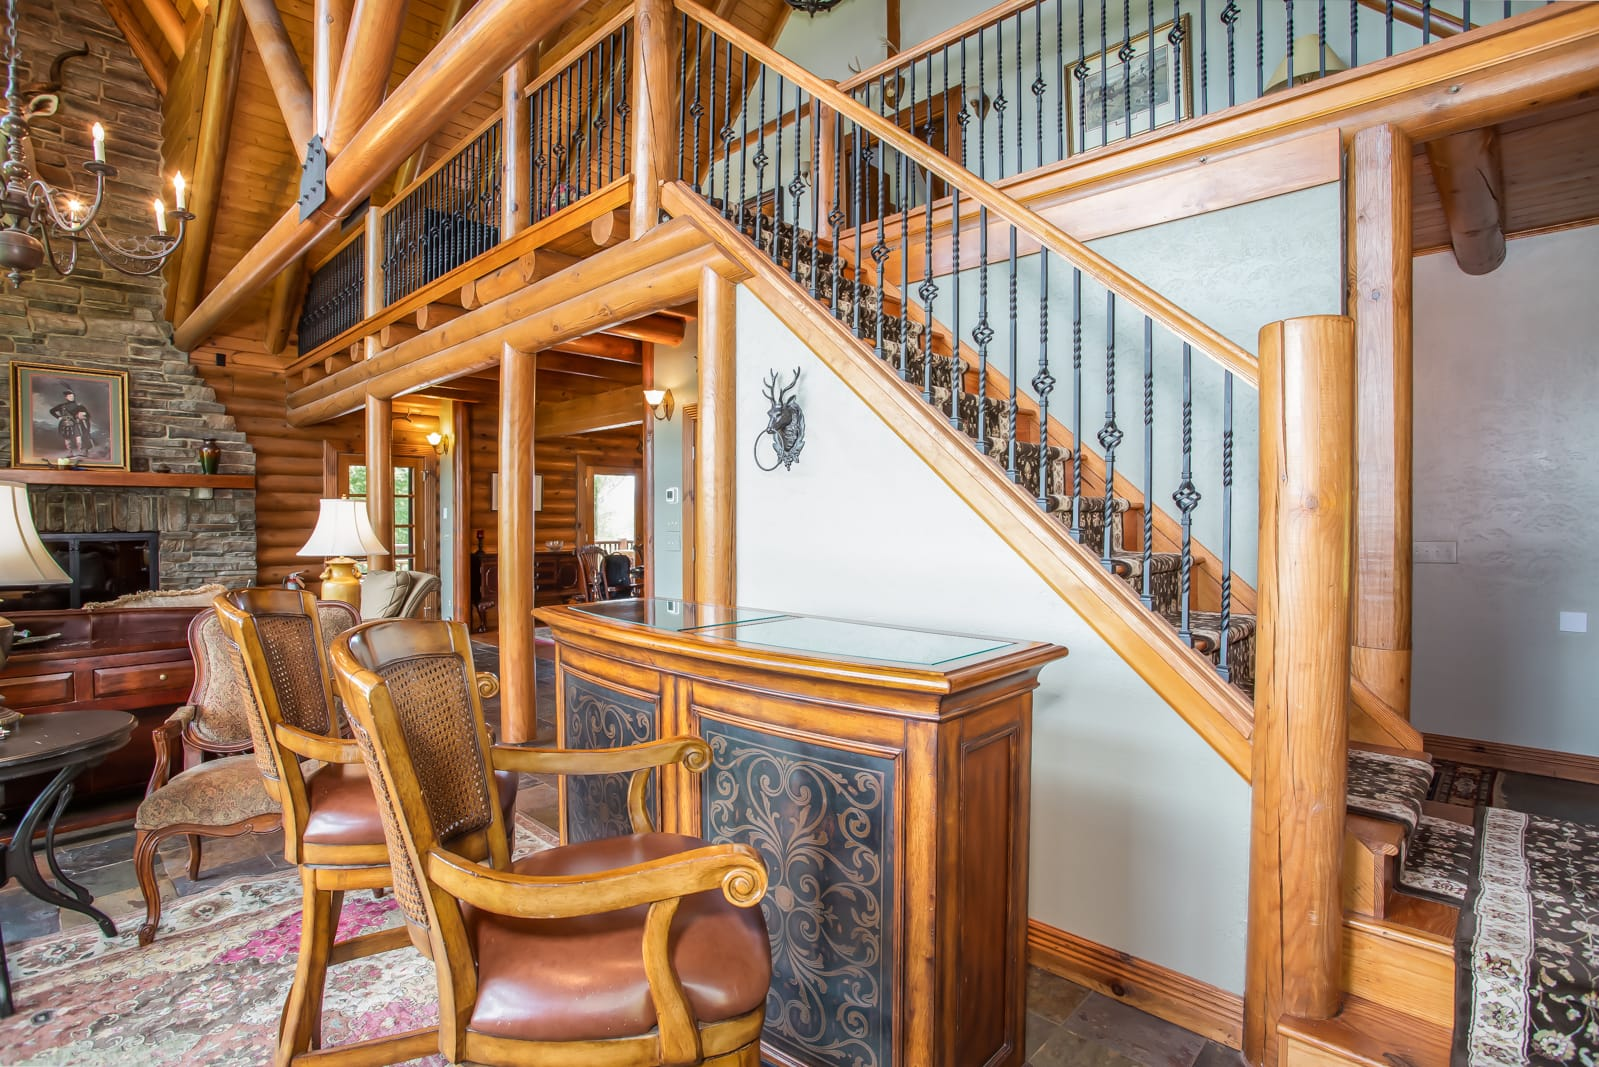 Seaforth Great Place to Enjoy Being Together, Exposed Beams, High Vaulted Ceilings, Stone Fireplace